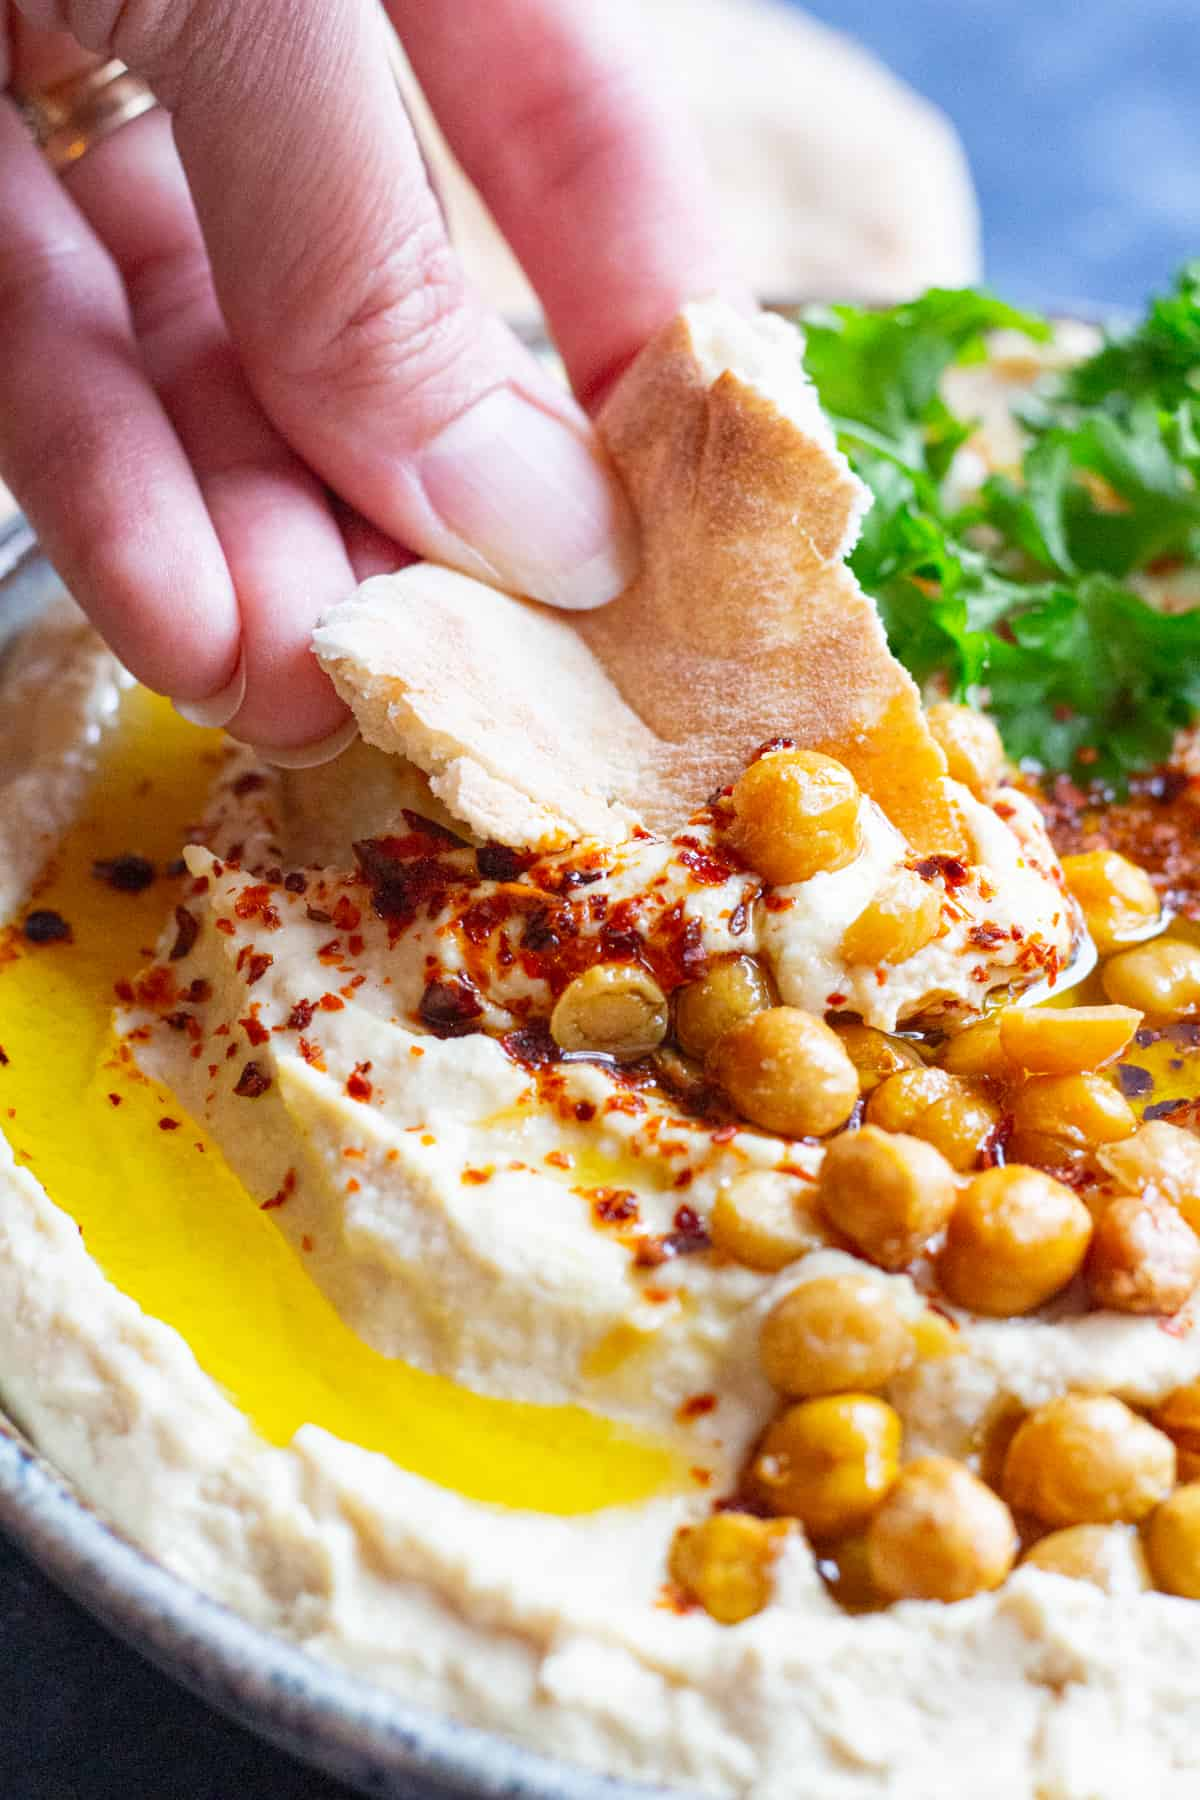 This simple homemade hummus recipe is easy to make. Serve with fresh pita.